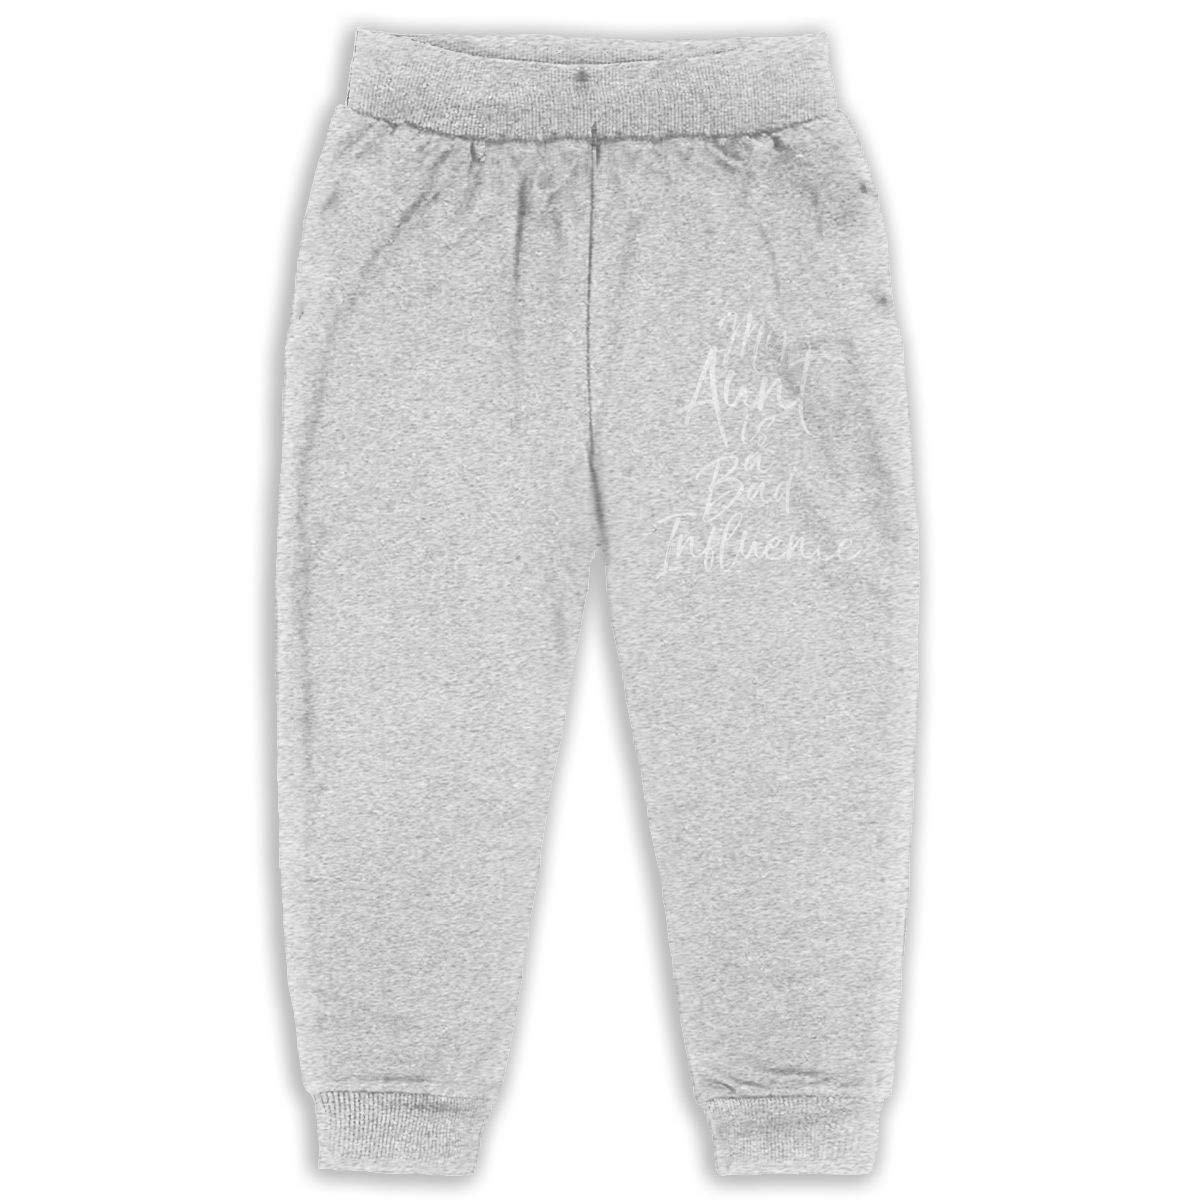 Cqelng Oii My Aunt is A Bad Influence 2-6T Boys Active Joggers Soft Pant